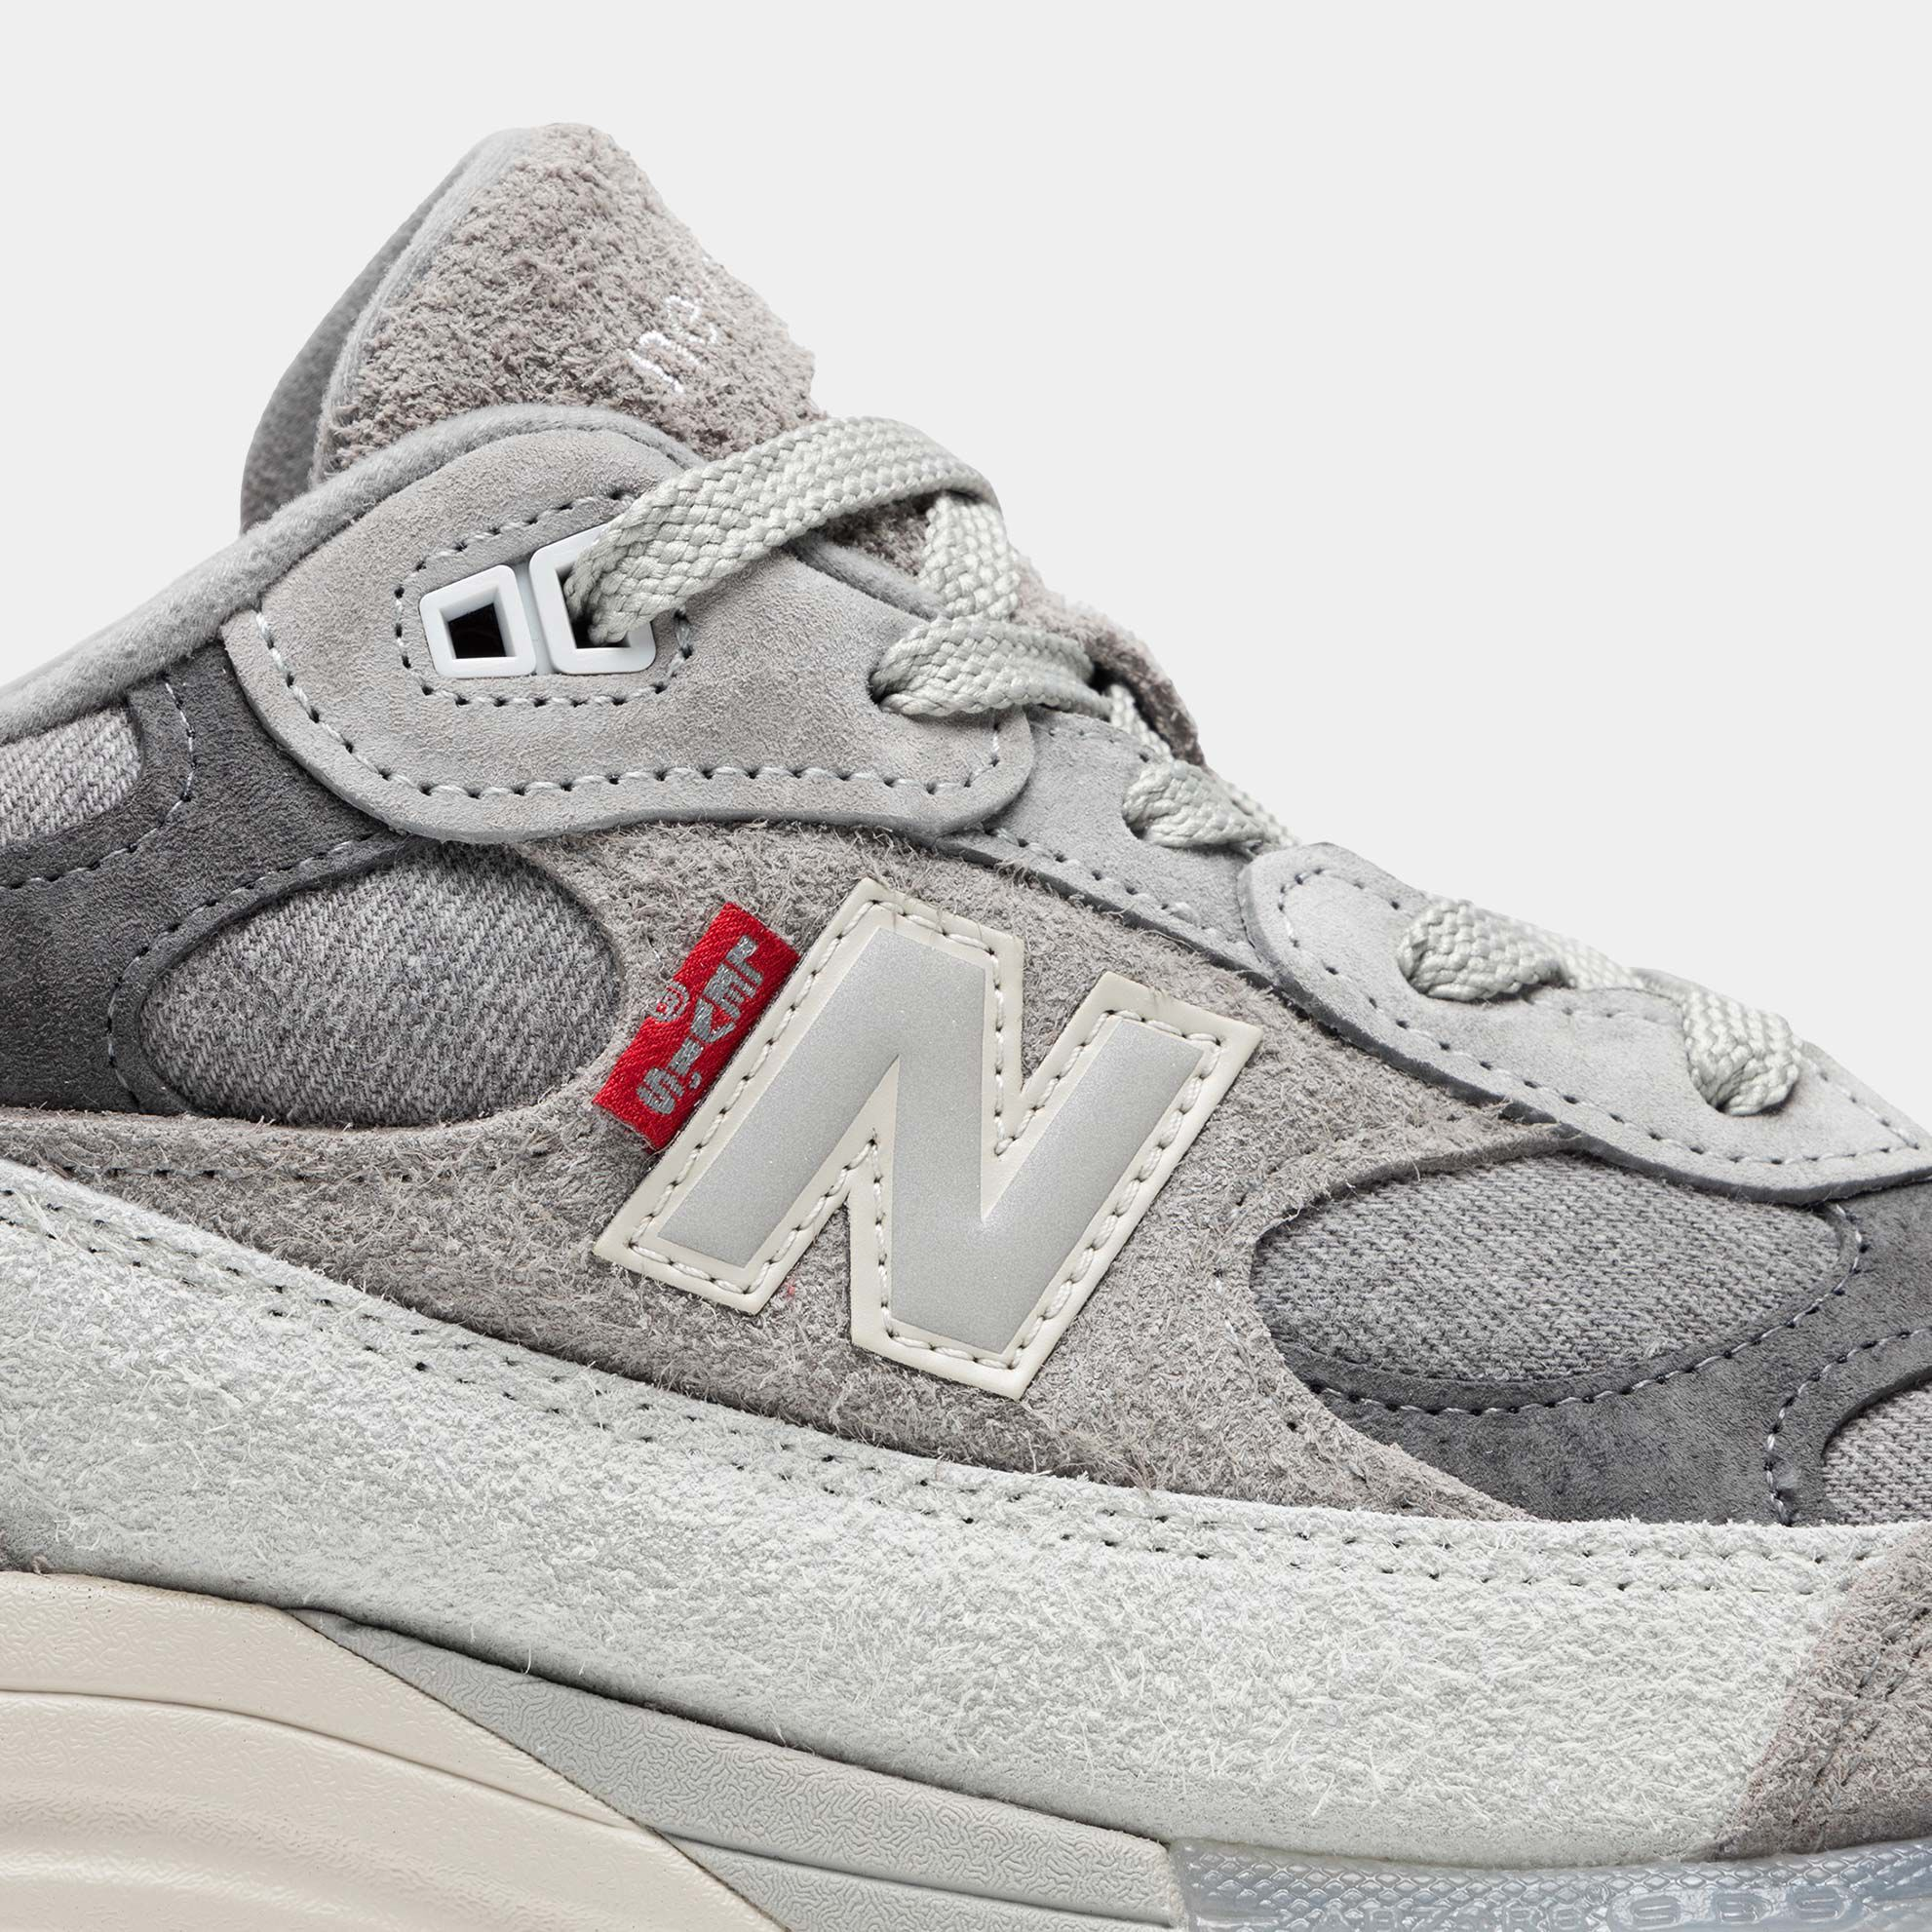 Made in USA 992 Levis - New Balance